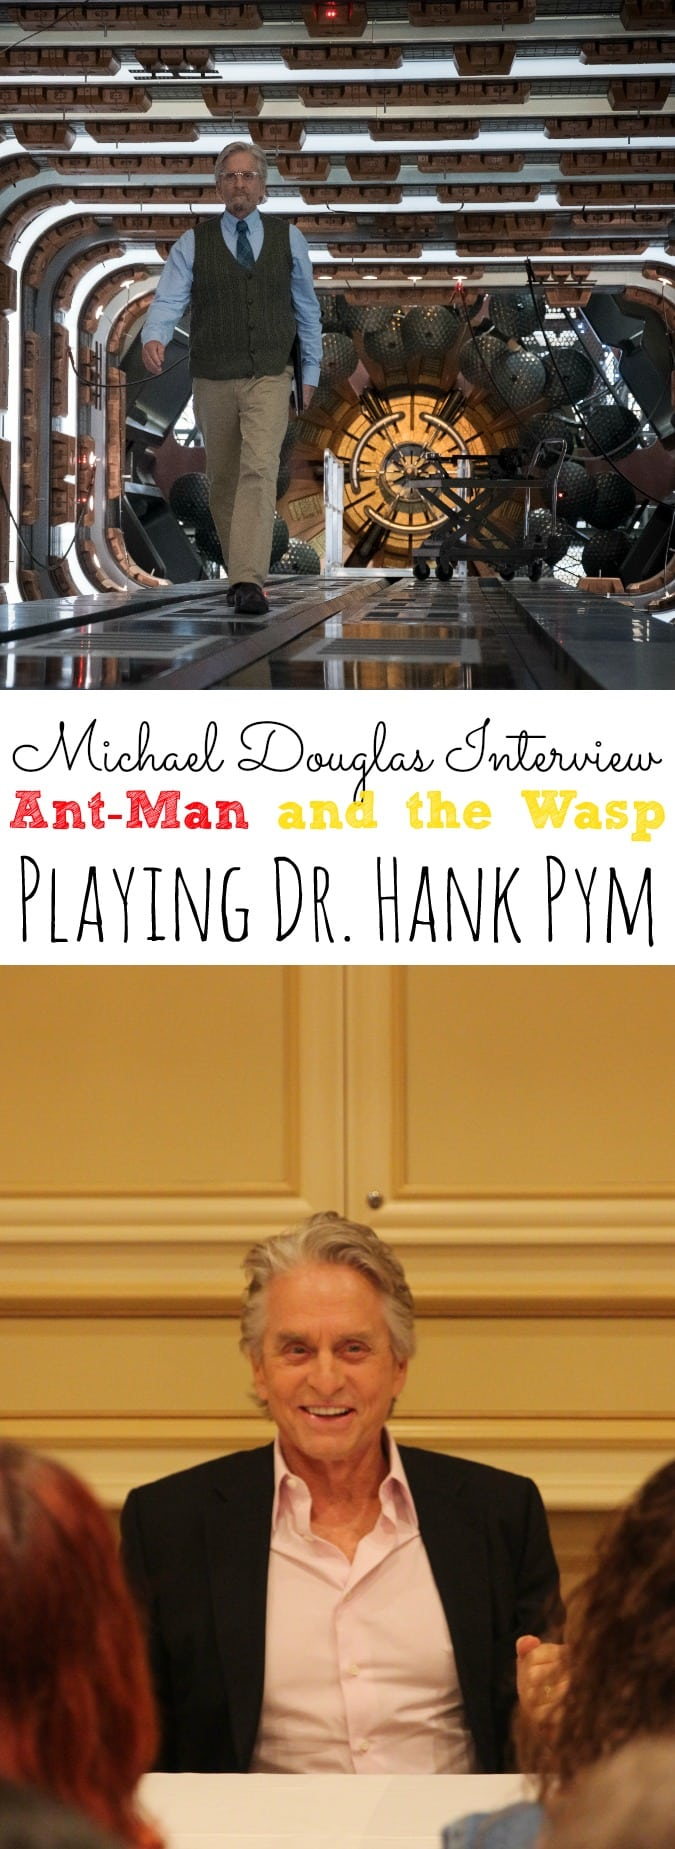 Michael Douglas Interview Ant-Man and the Wasp